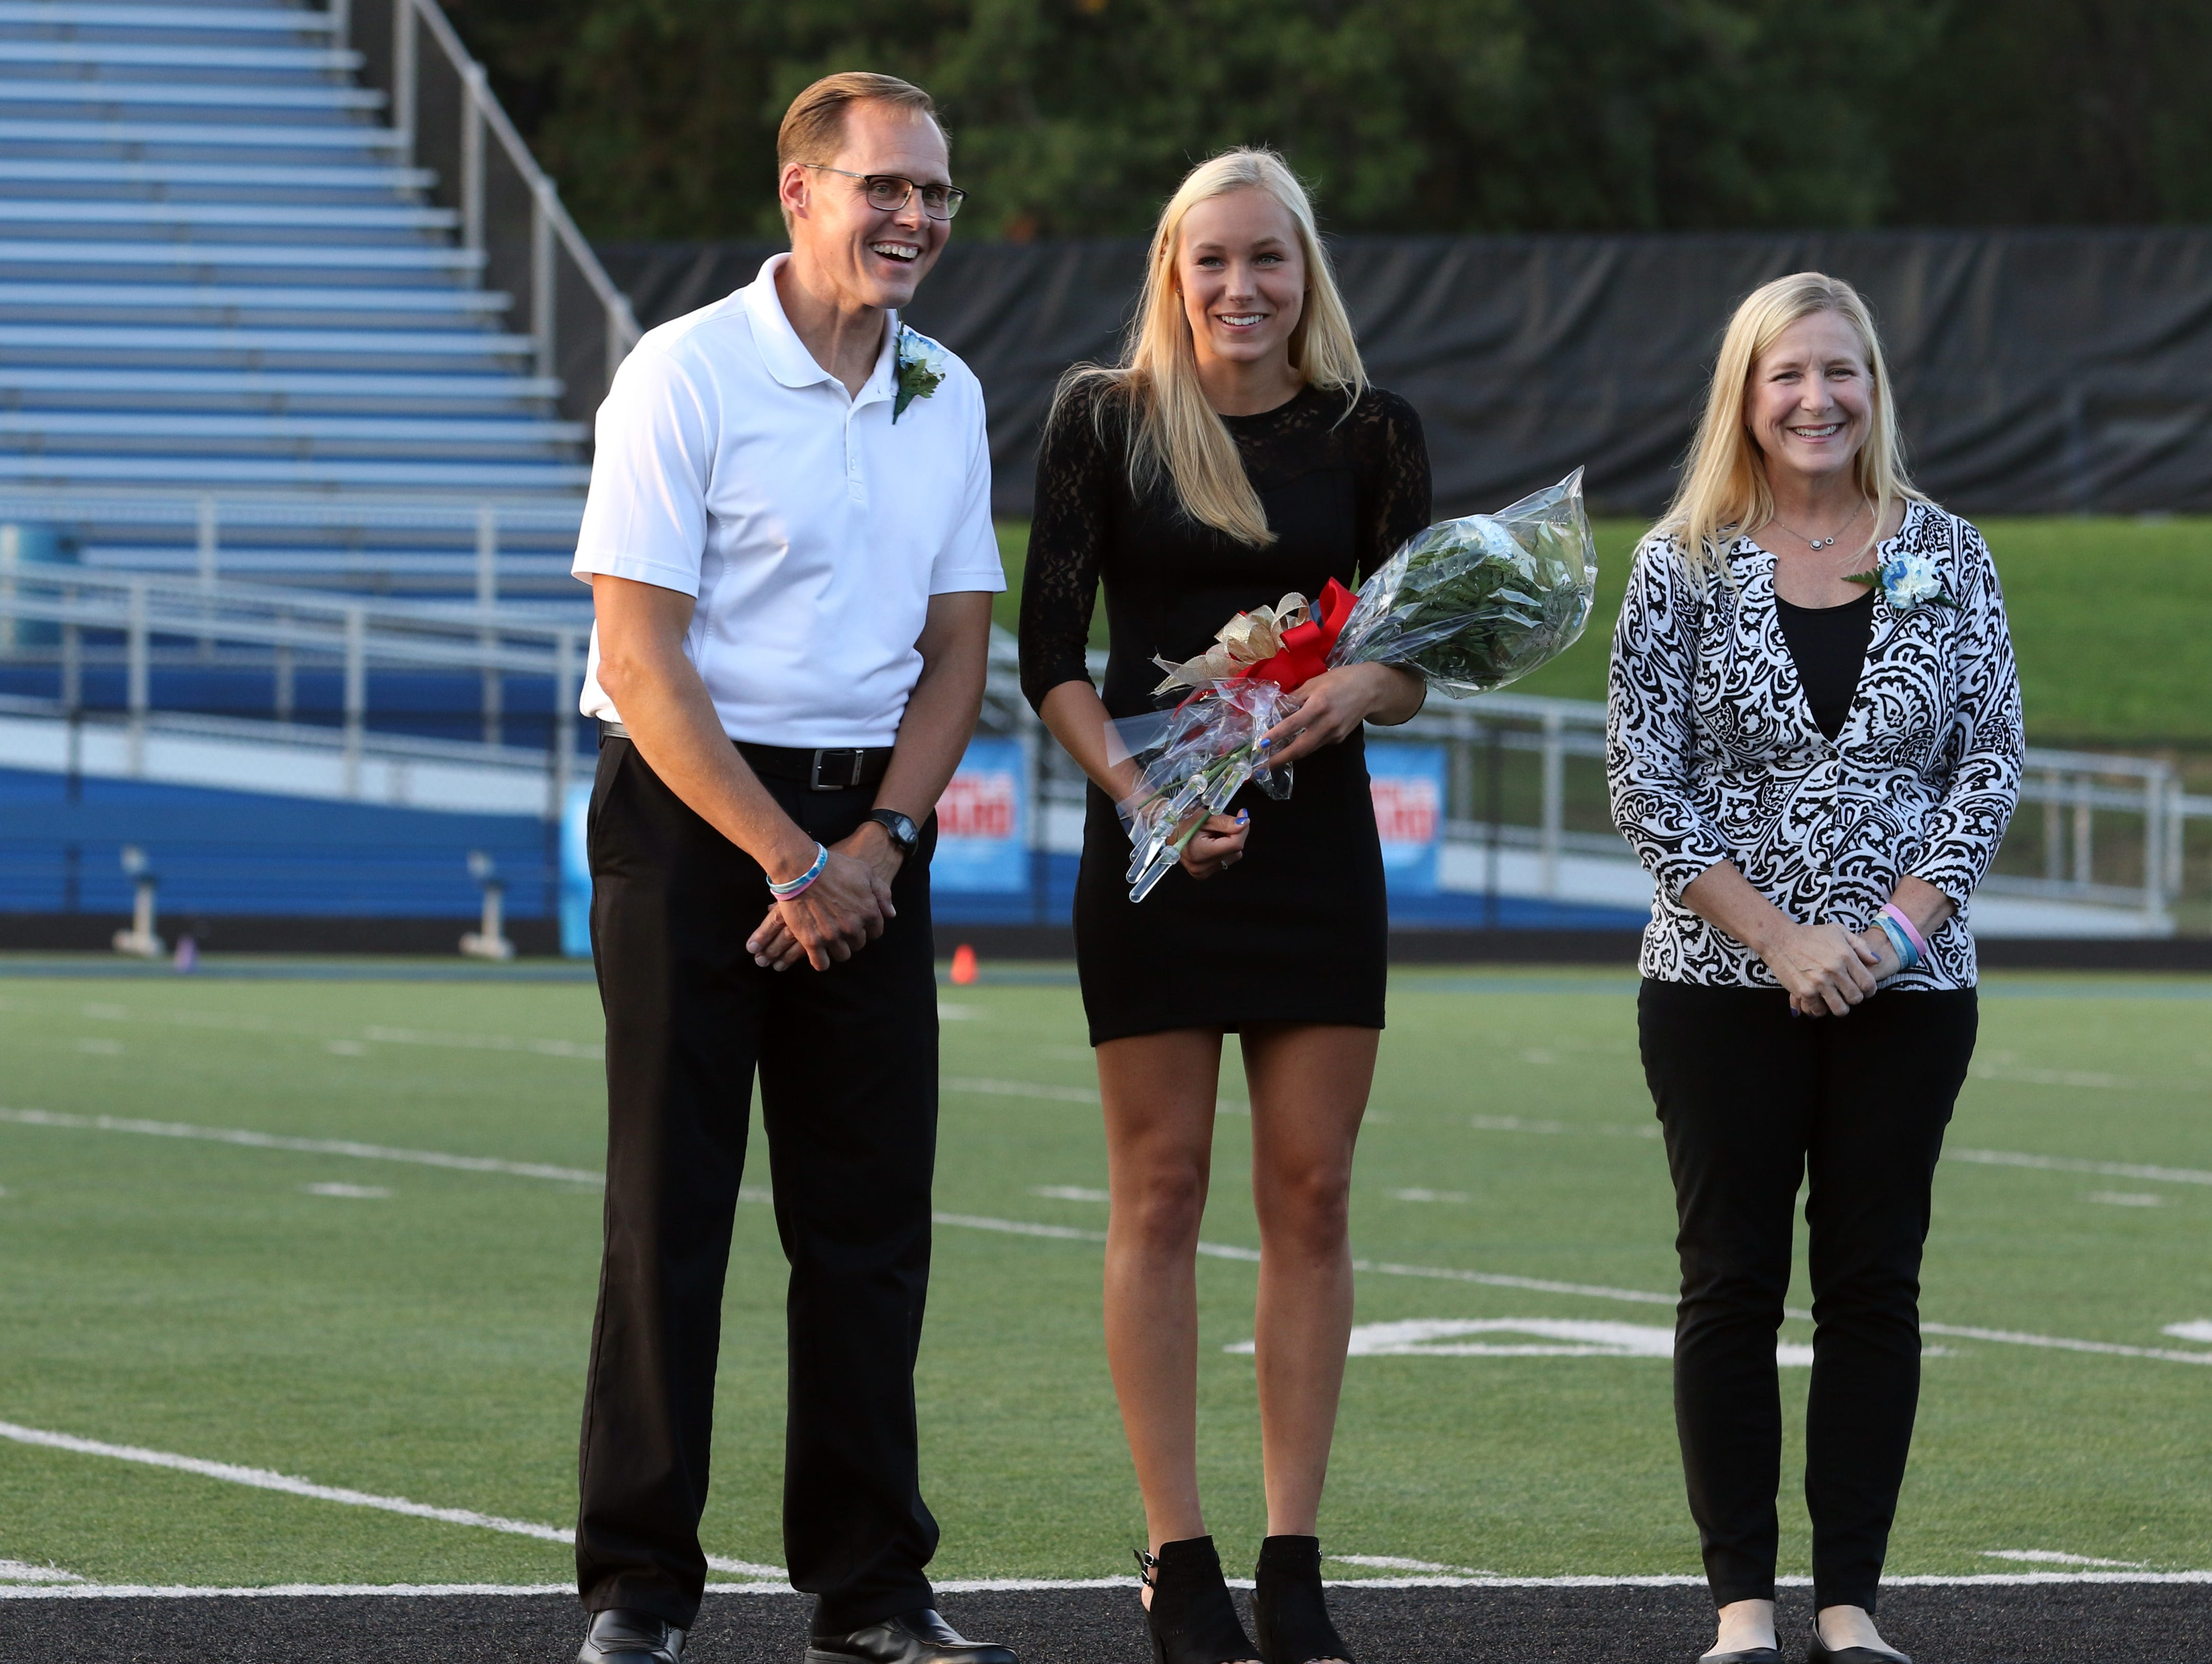 Senior attendant Valerie Hickman and her parents Beth and Brett Hickman.